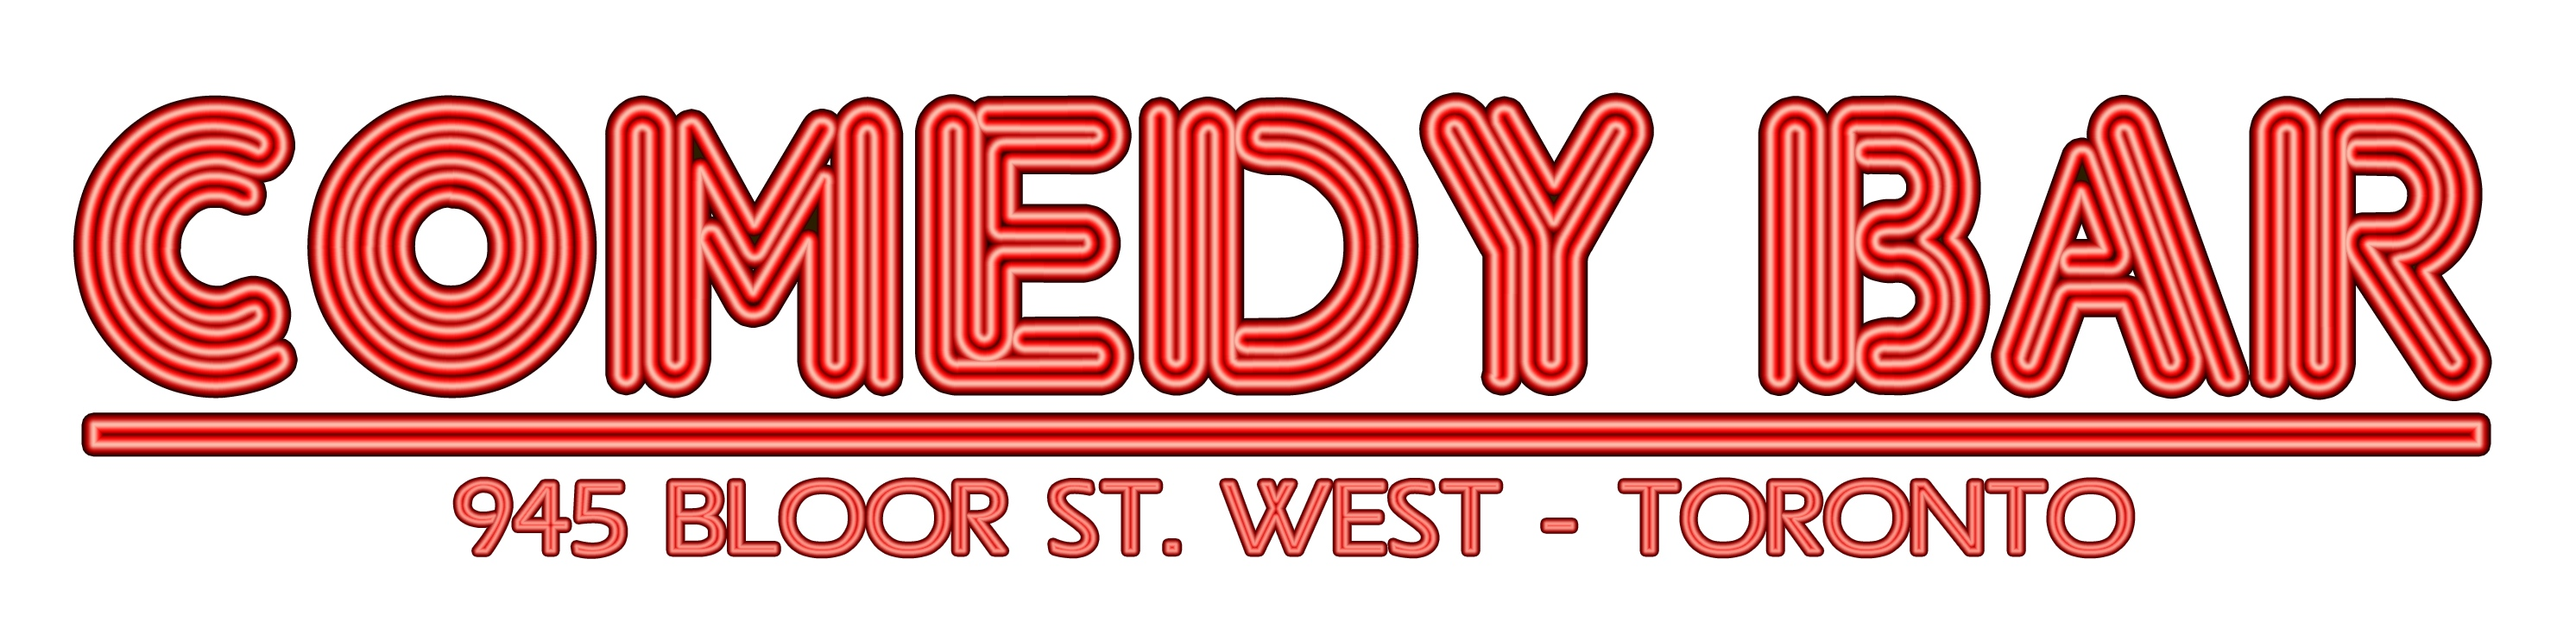 Comedy Bar Logo